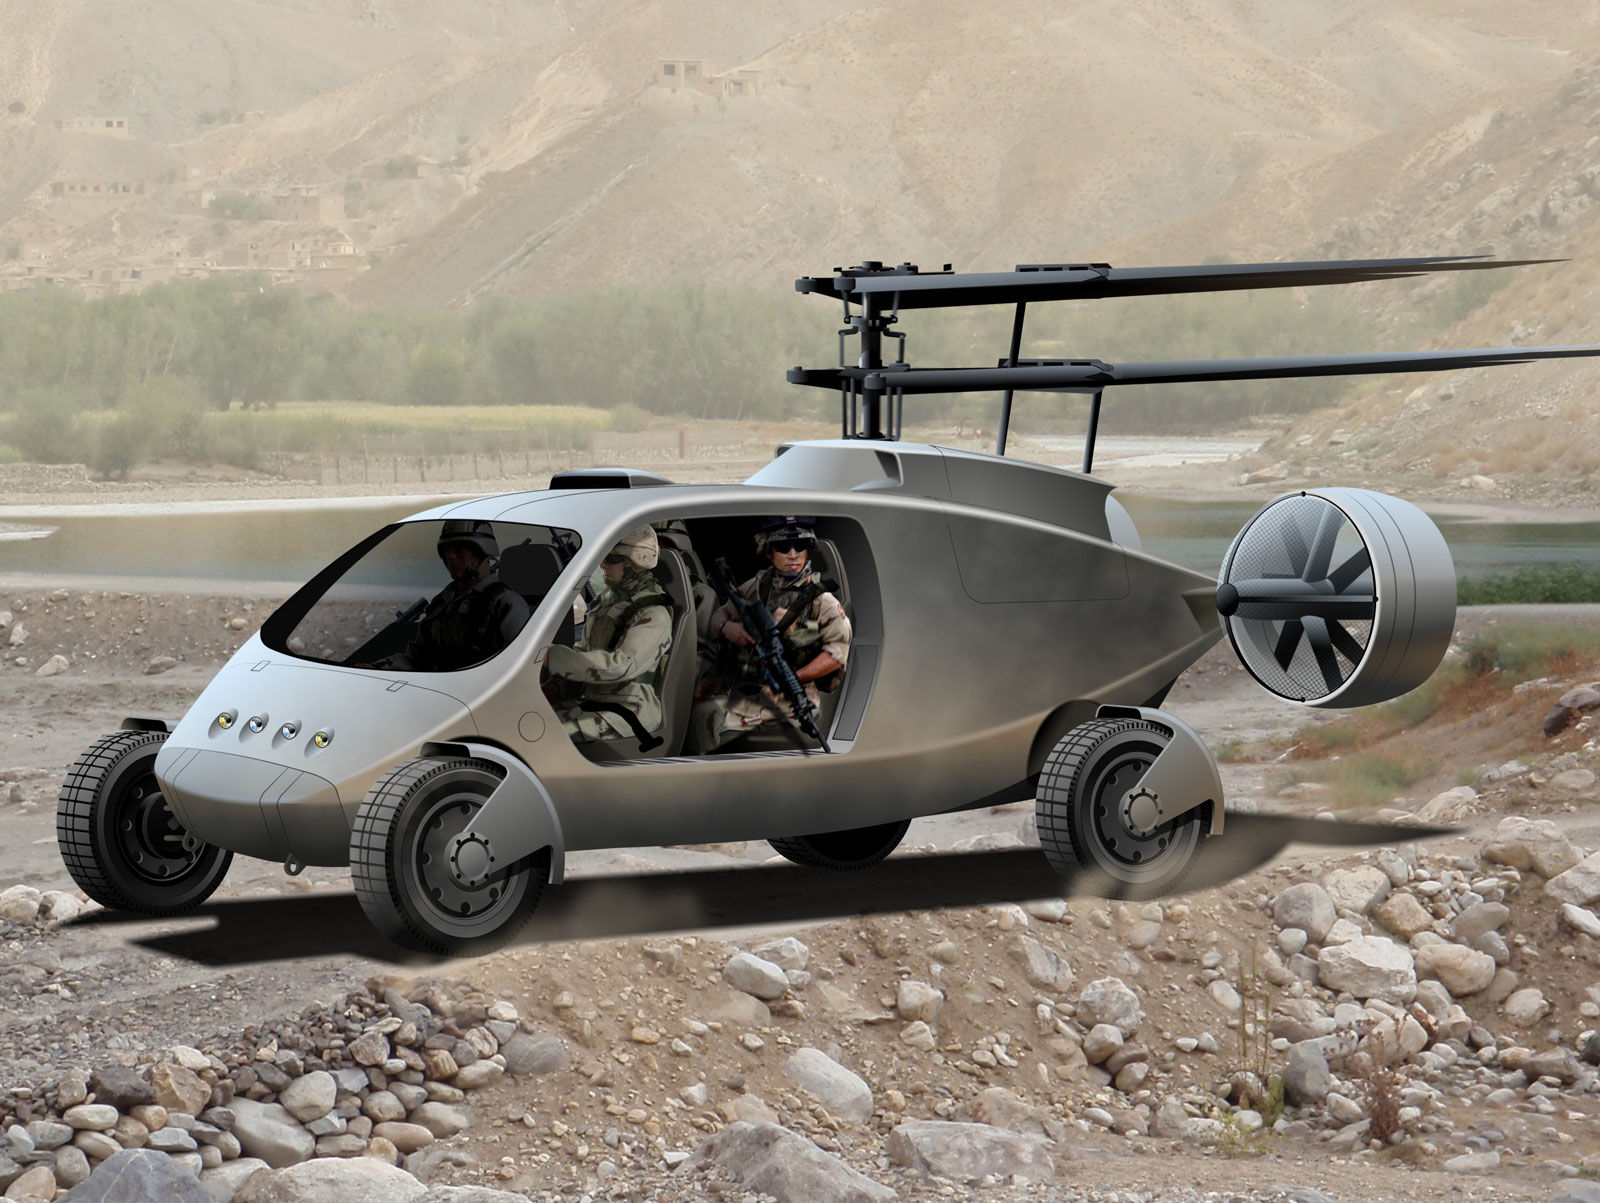 Flying Hummer – AVX Aircraft's Flying SUV